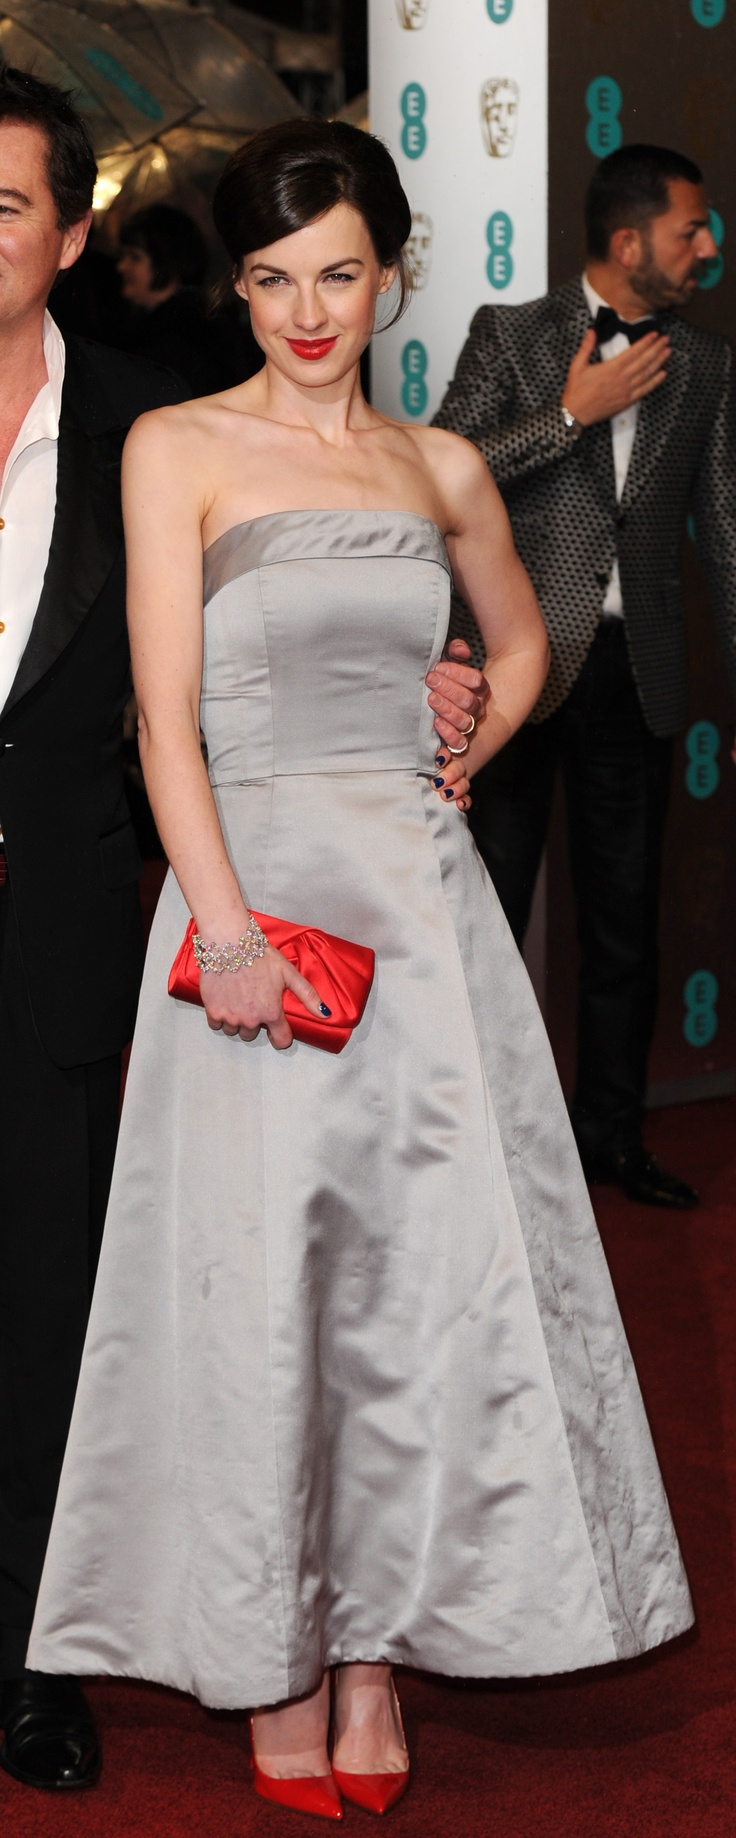 Jessica Raine at the EE British Academy Film Awards 2013 - I love these pops of red!